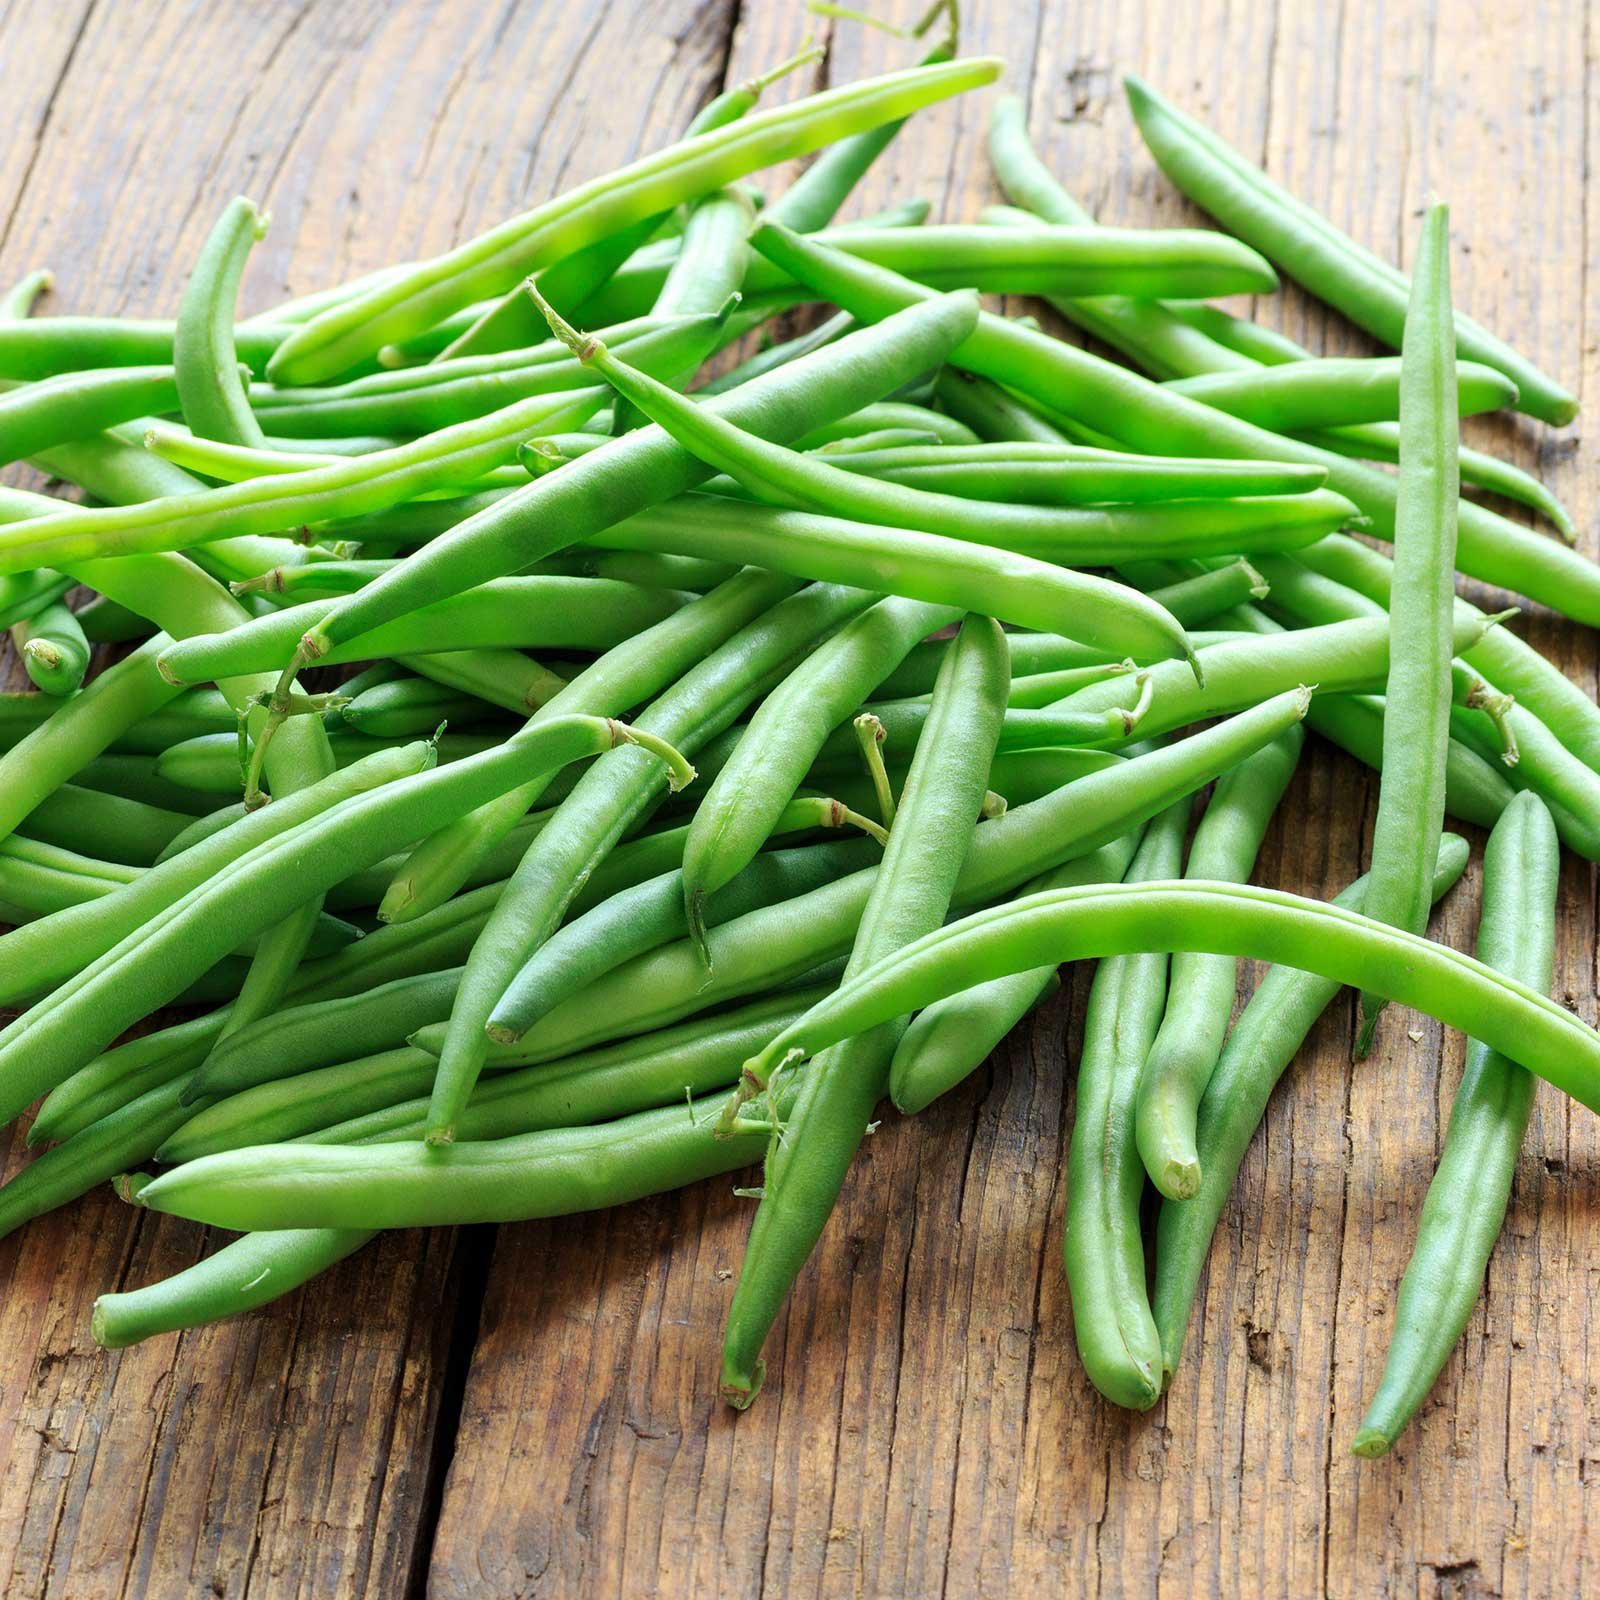 Blue lake bush beans days to maturity